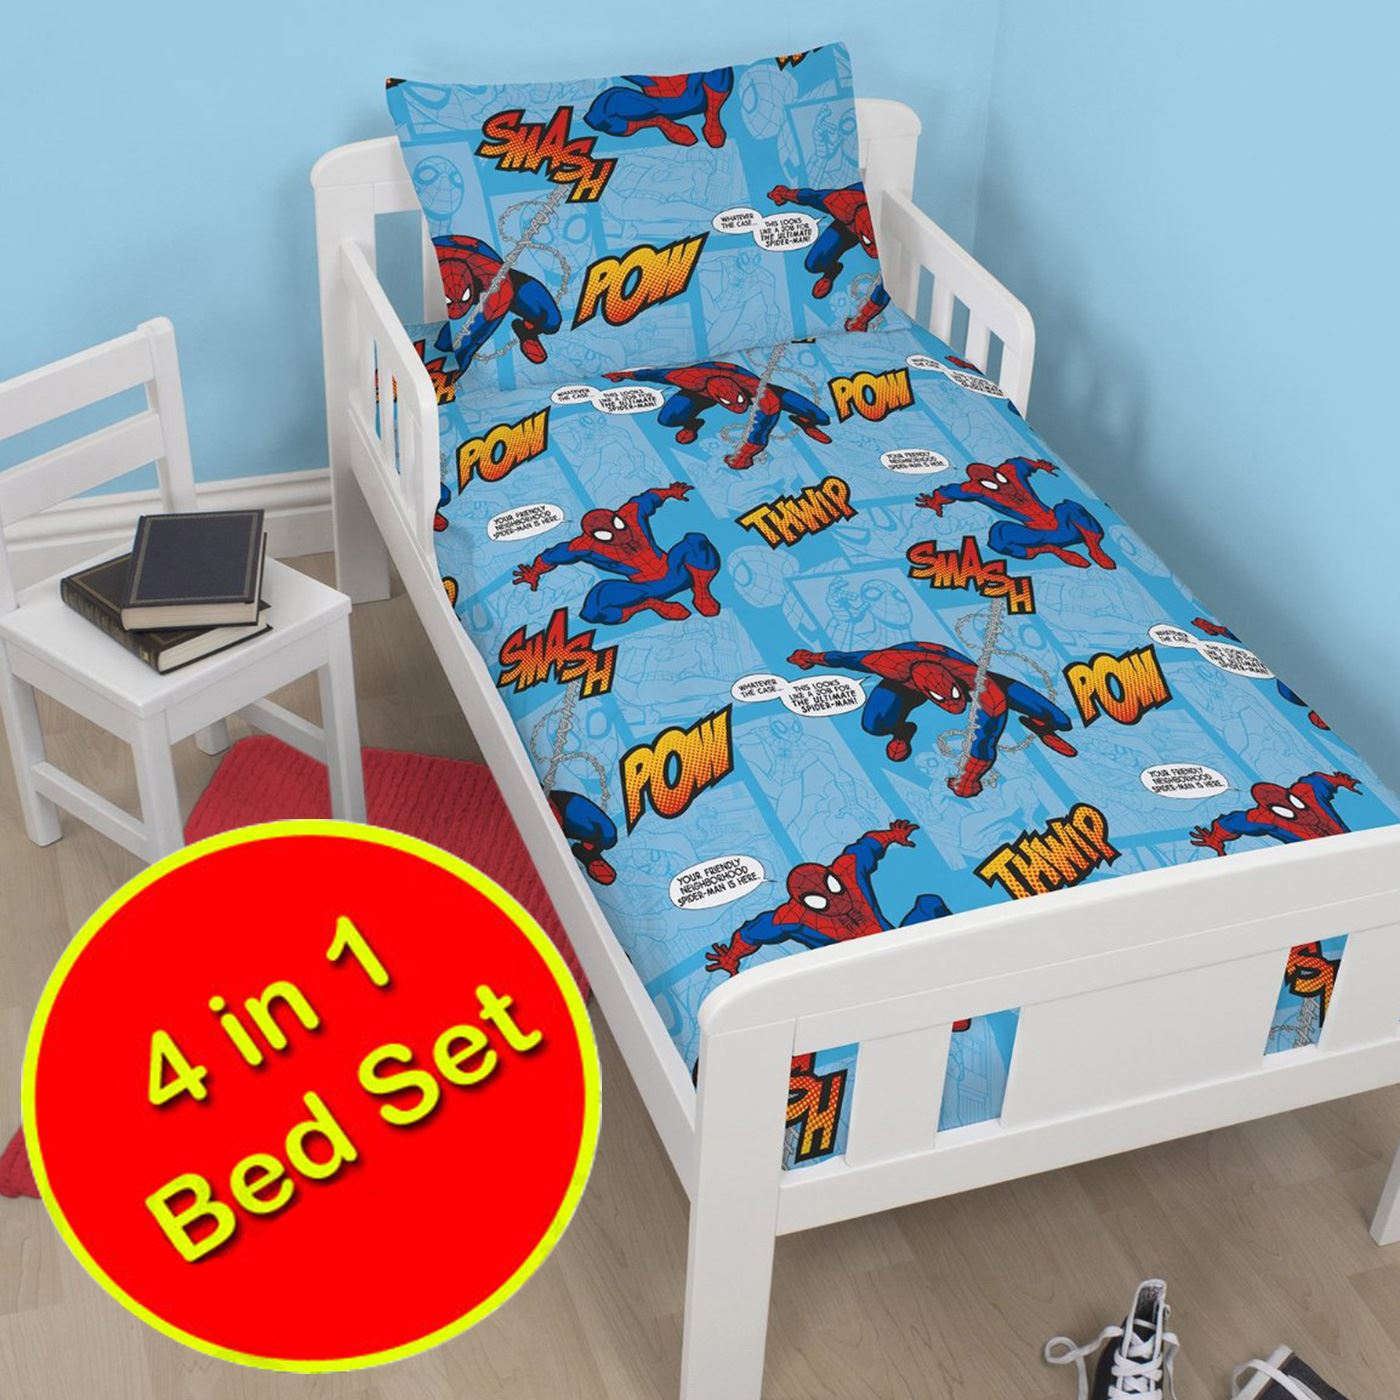 Spiderman and friends bedding - Spiderman Thwip 4 In 1 Junior Toddler Bedding Bundle Duvet Pillow Covers